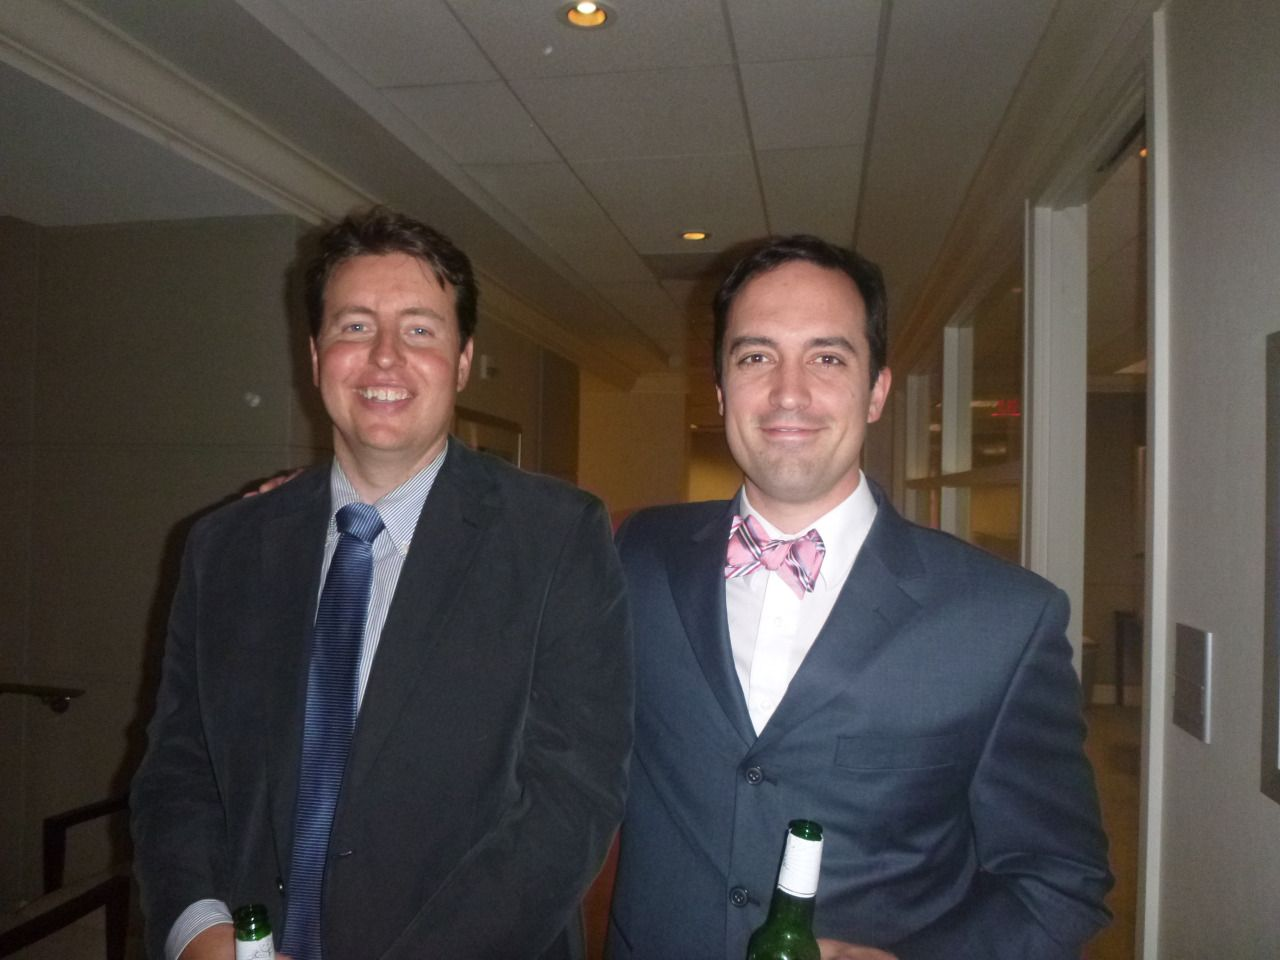 Evan Guthrie Law Firm News Law Life New Law Clerk Of Courts Law Firm